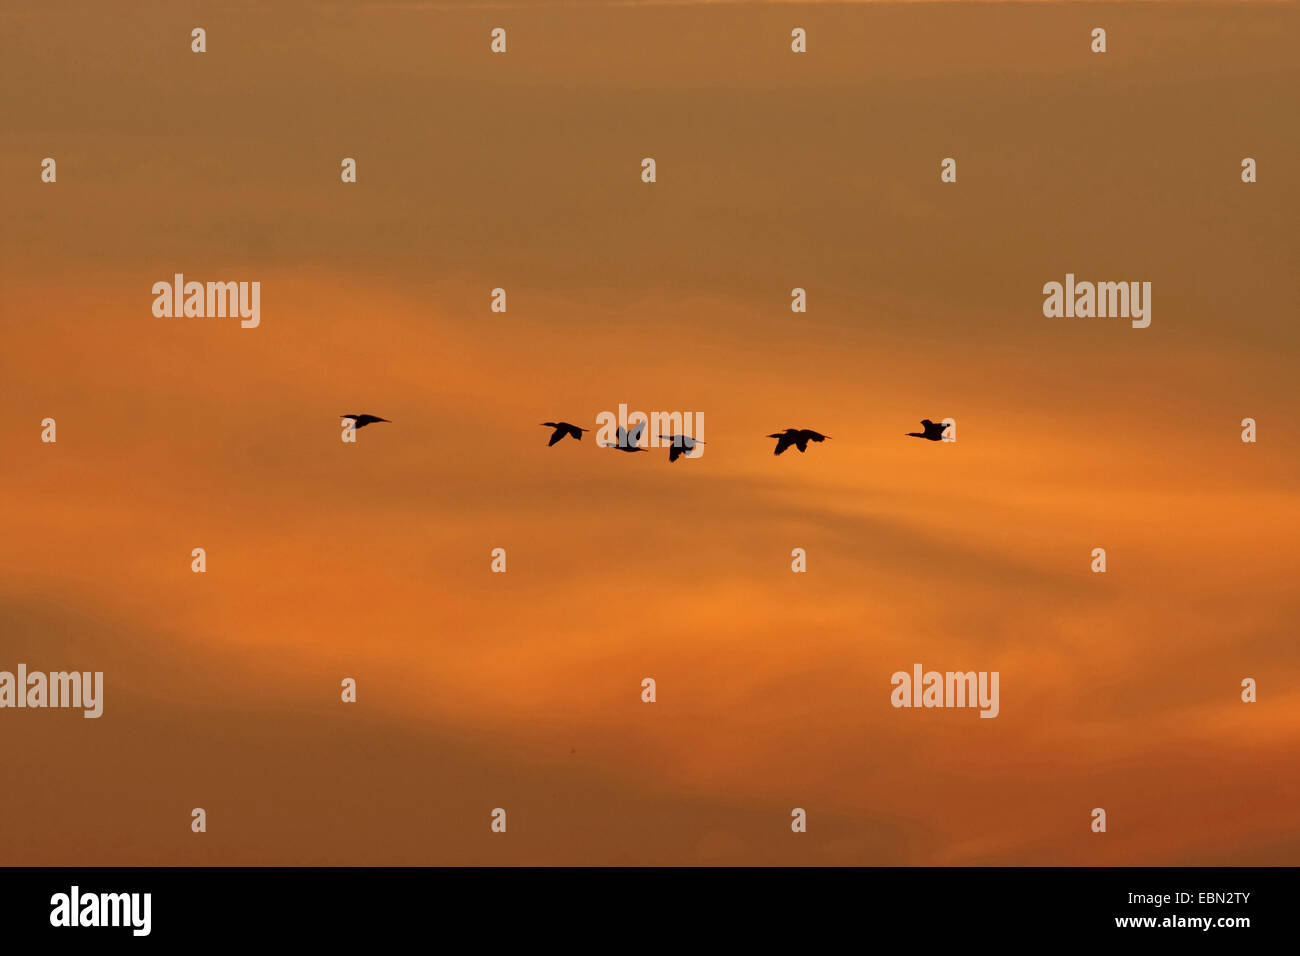 greylag goose (Anser anser), migratory birds at the morning sky in October, Germany - Stock Image